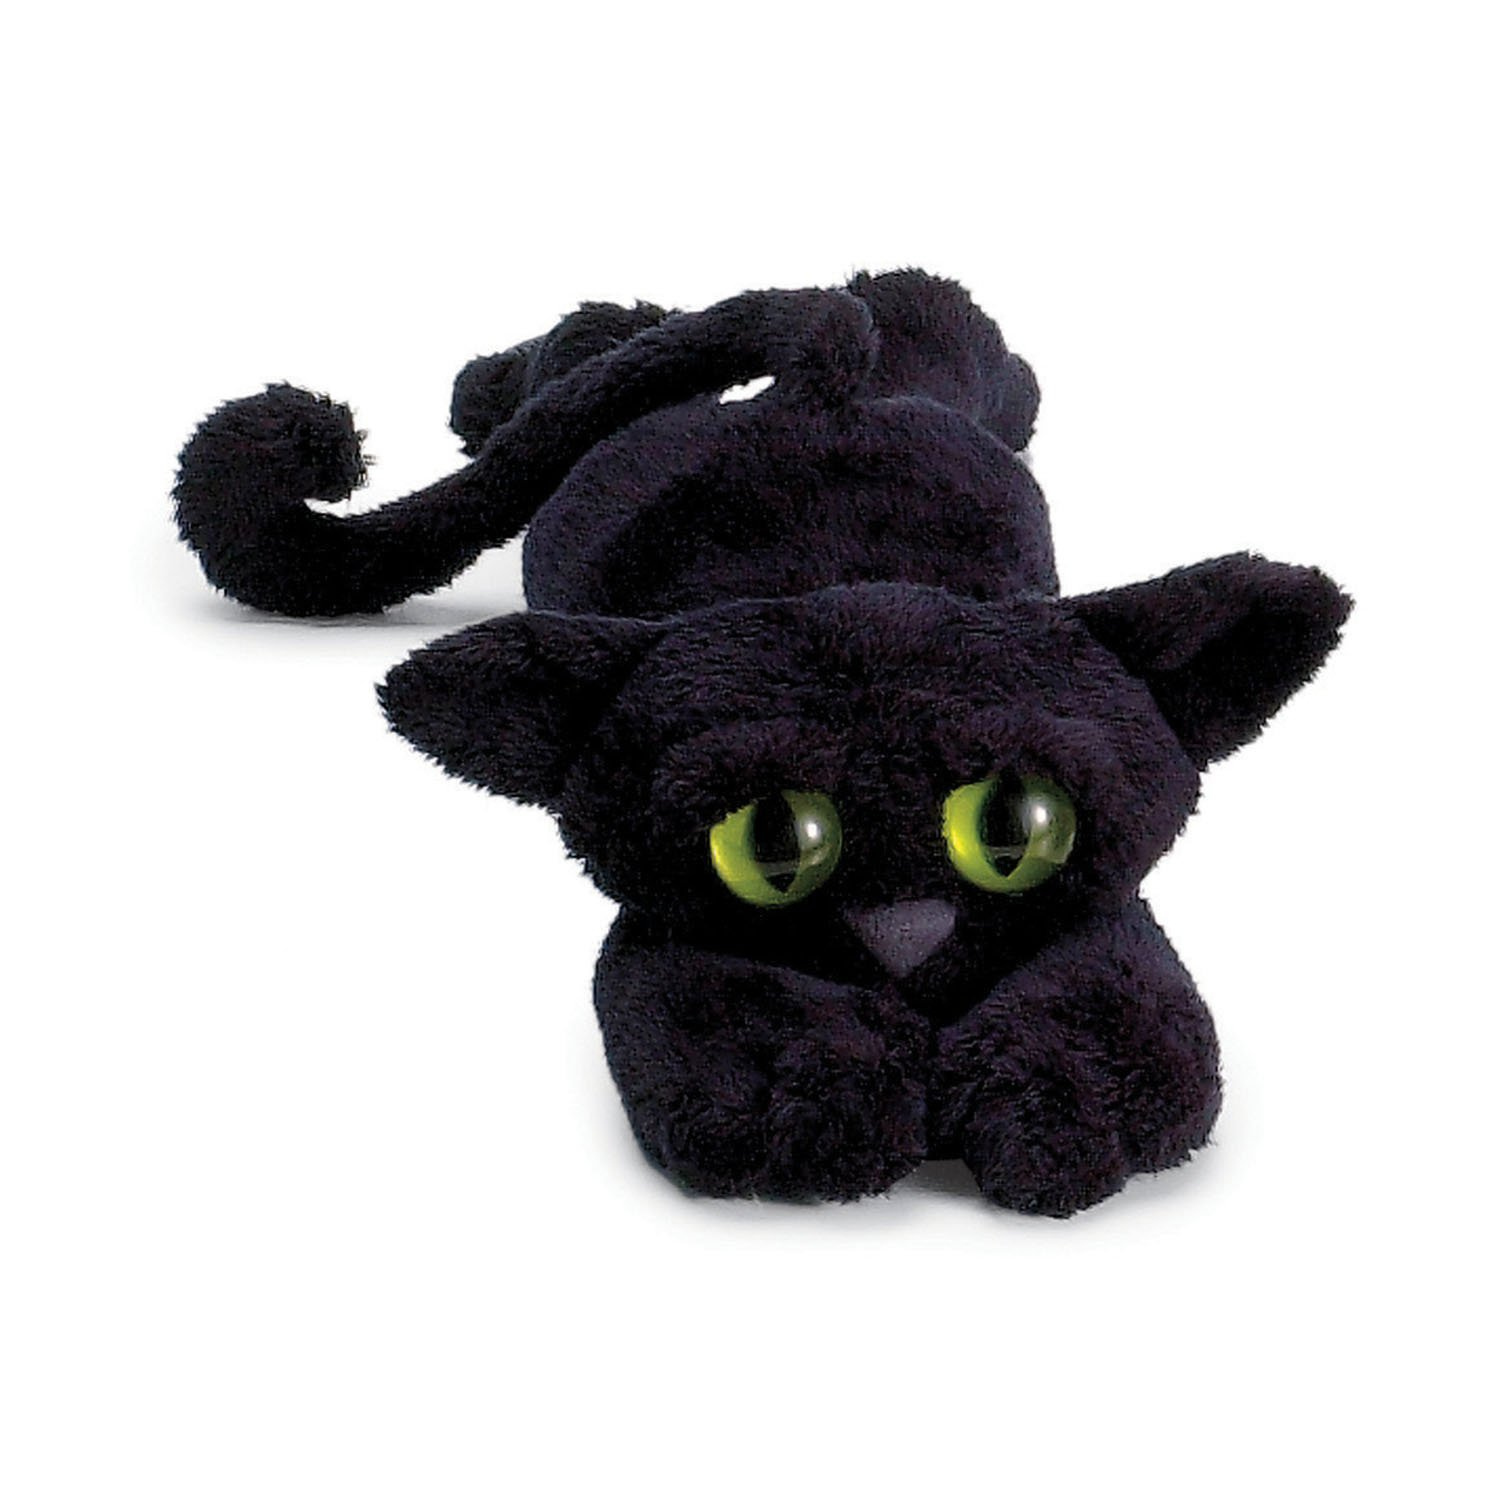 Small black cat soft toy